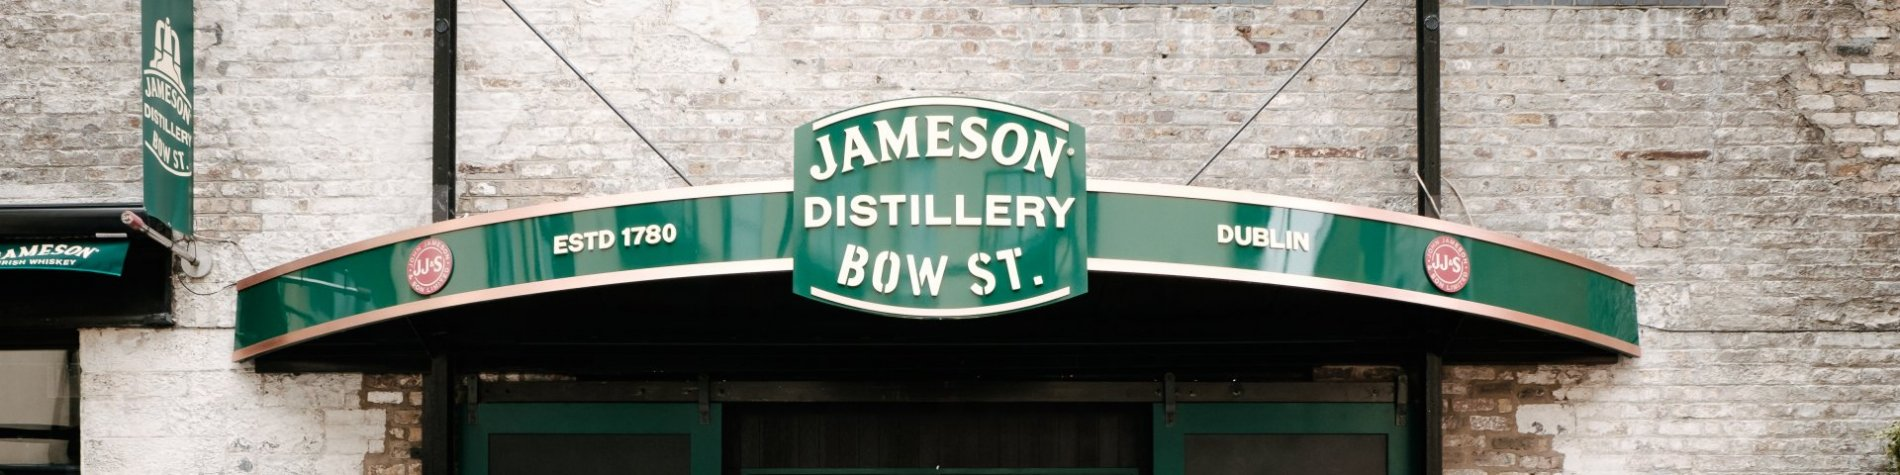 Improved Jameson Distillery after being re-opened in 2017